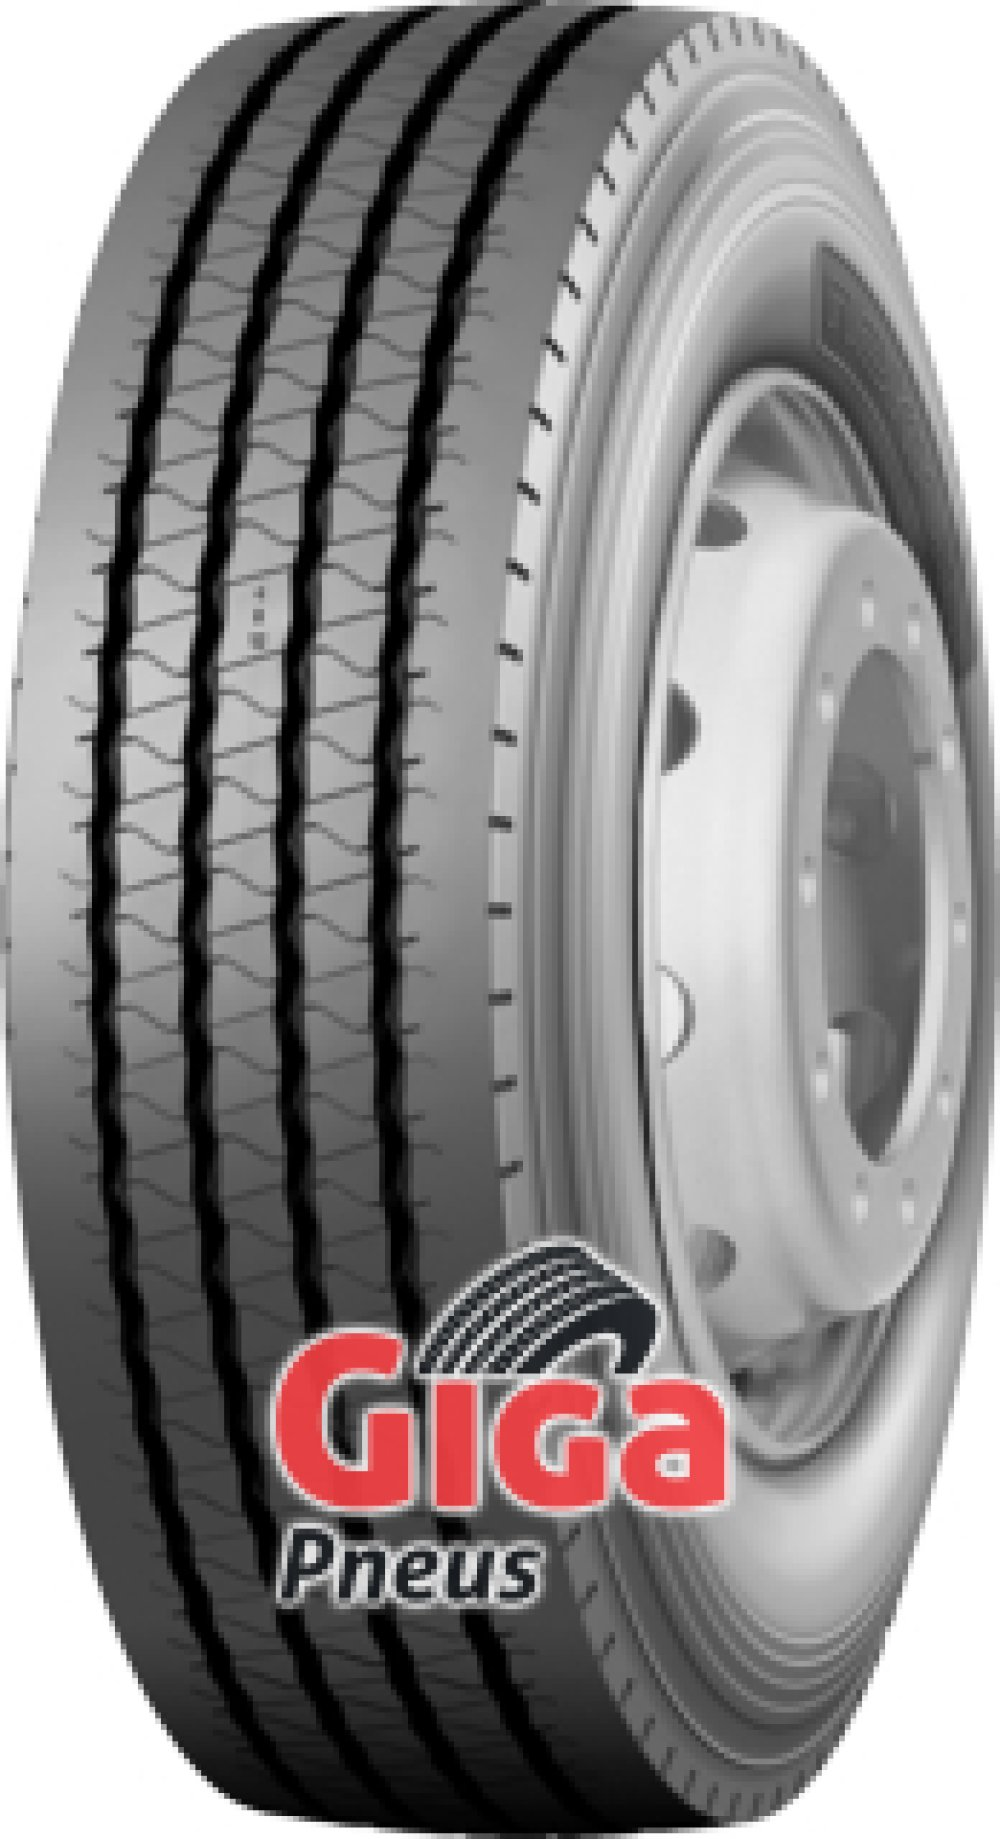 Nokian NTR 32 ( 315/80 R22.5 154/150M Double marquage 156/150L, Doppelkennung 156/150L )